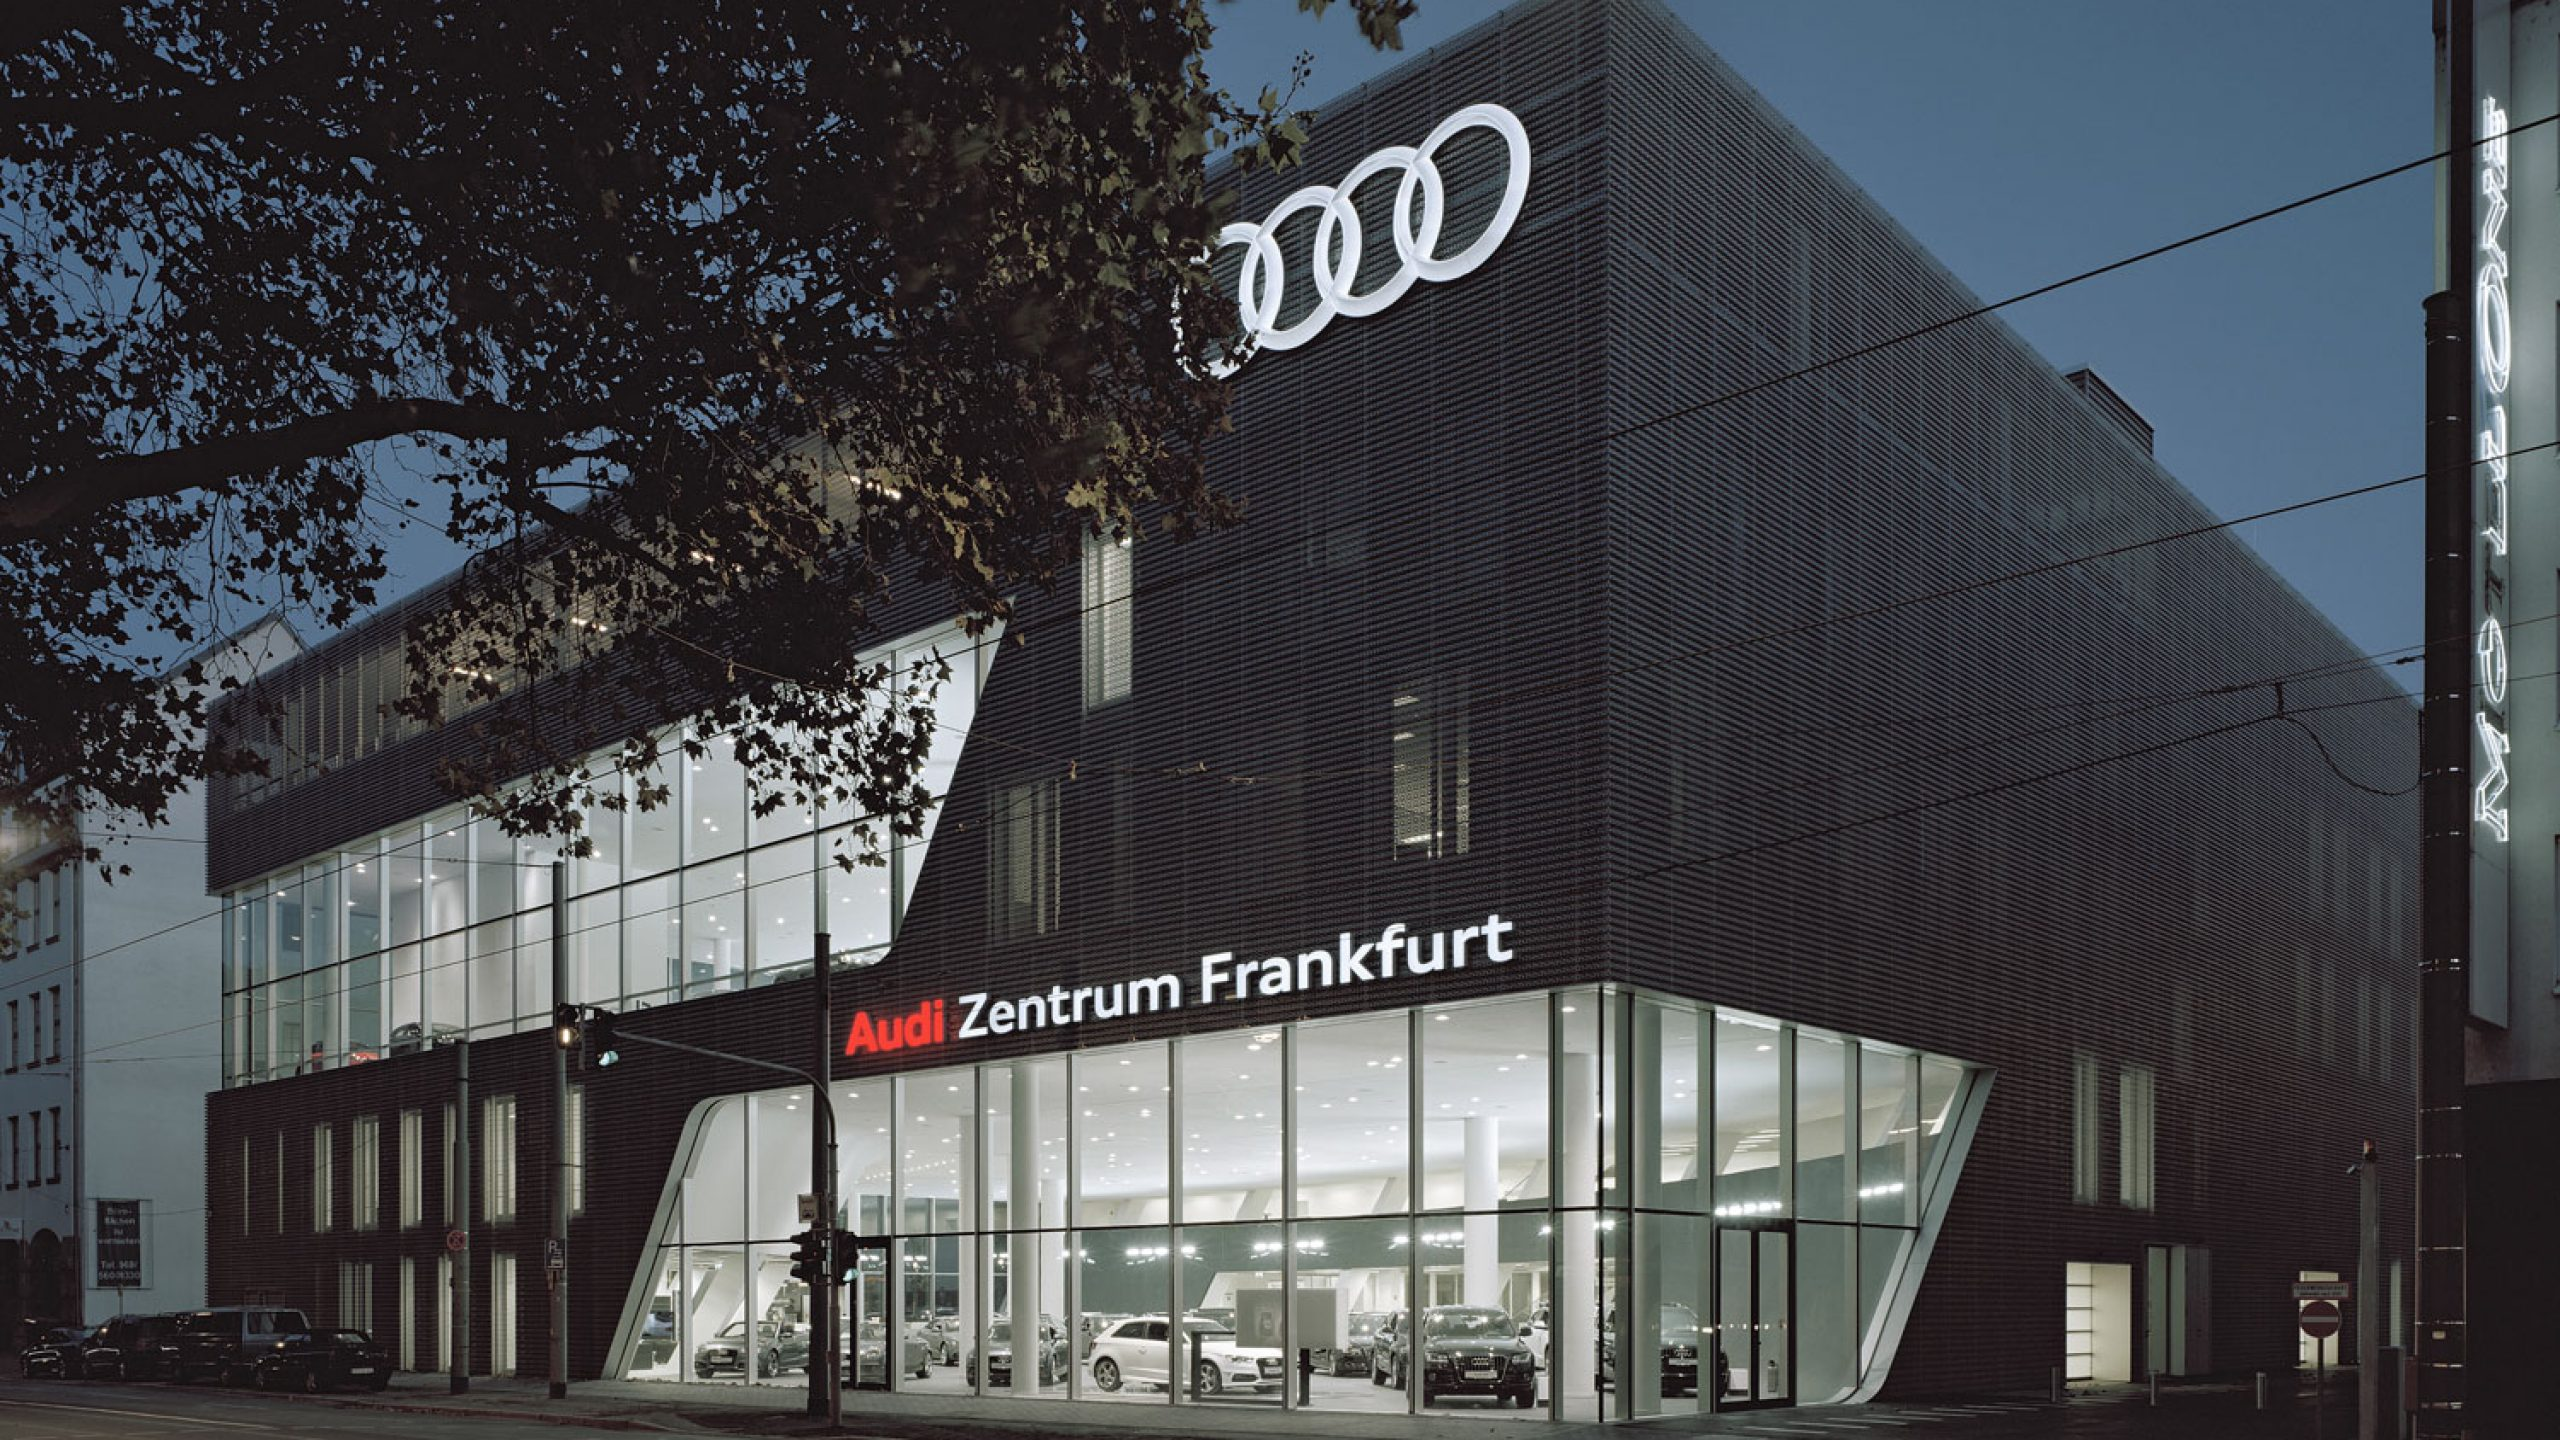 audi zentrum frankfurt prof feix ingenieure gmbh. Black Bedroom Furniture Sets. Home Design Ideas